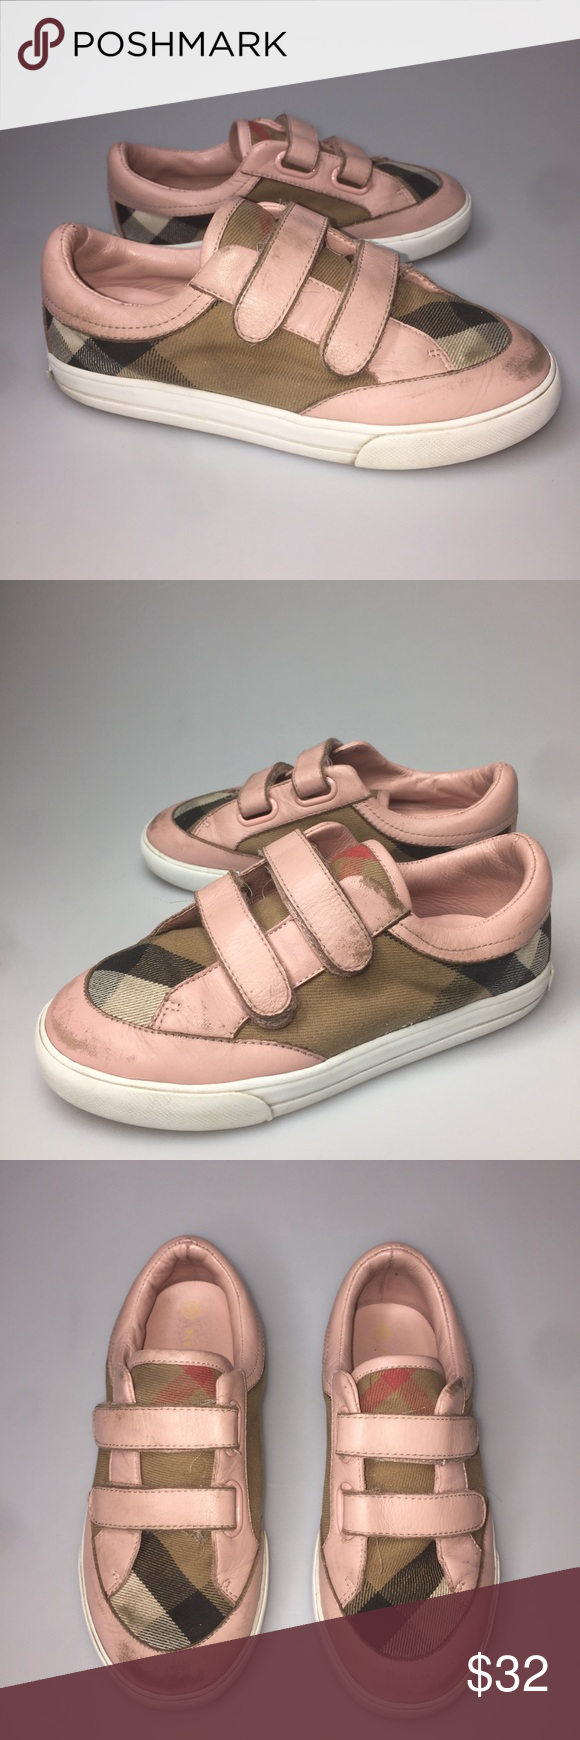 6ff974547888 Burberry Mini Heacham Checker Slip On Sneakers 30 Burberry Mini Heacham  Checker Slip On Sneaker Lil Kids Shoes Girls 30 12 US Leather Canvas Nice  pre-owned ...